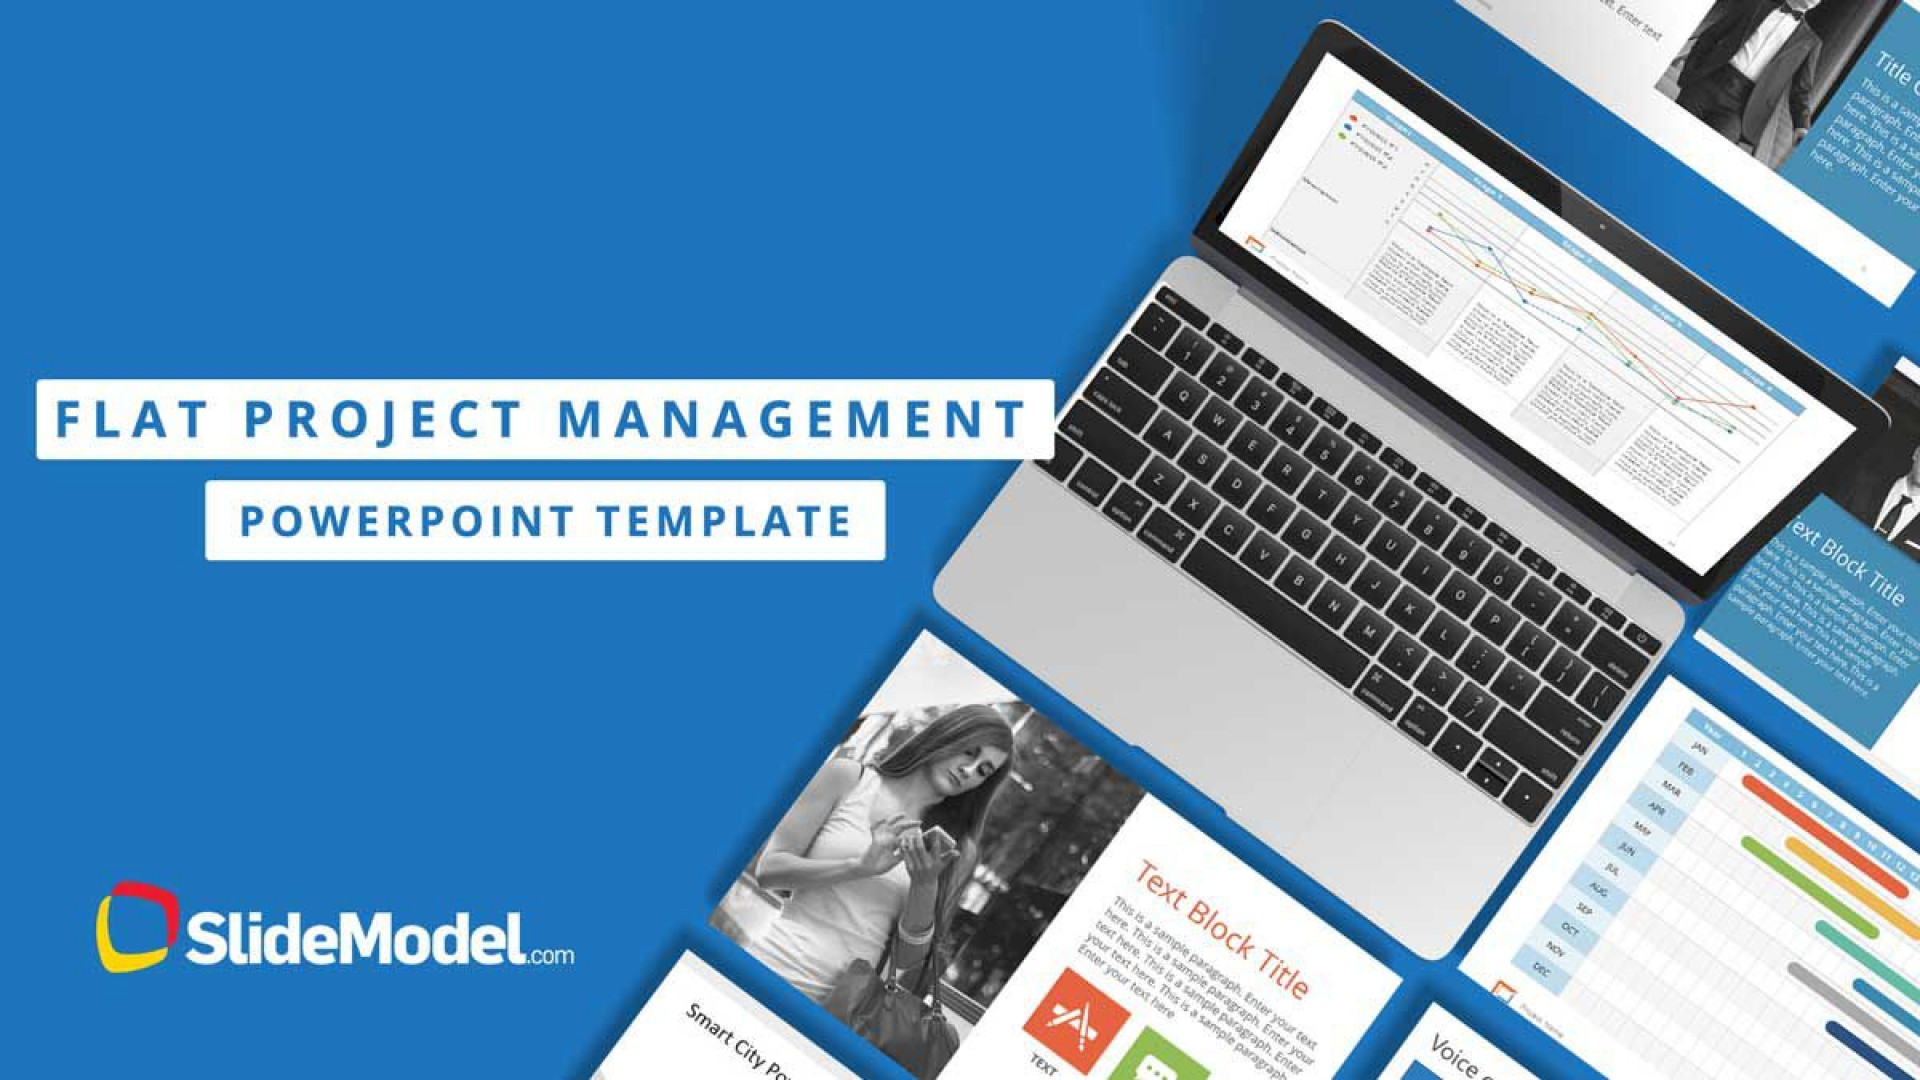 003 Best Project Management Powerpoint Template Free Download Image  Sqert Dashboard1920